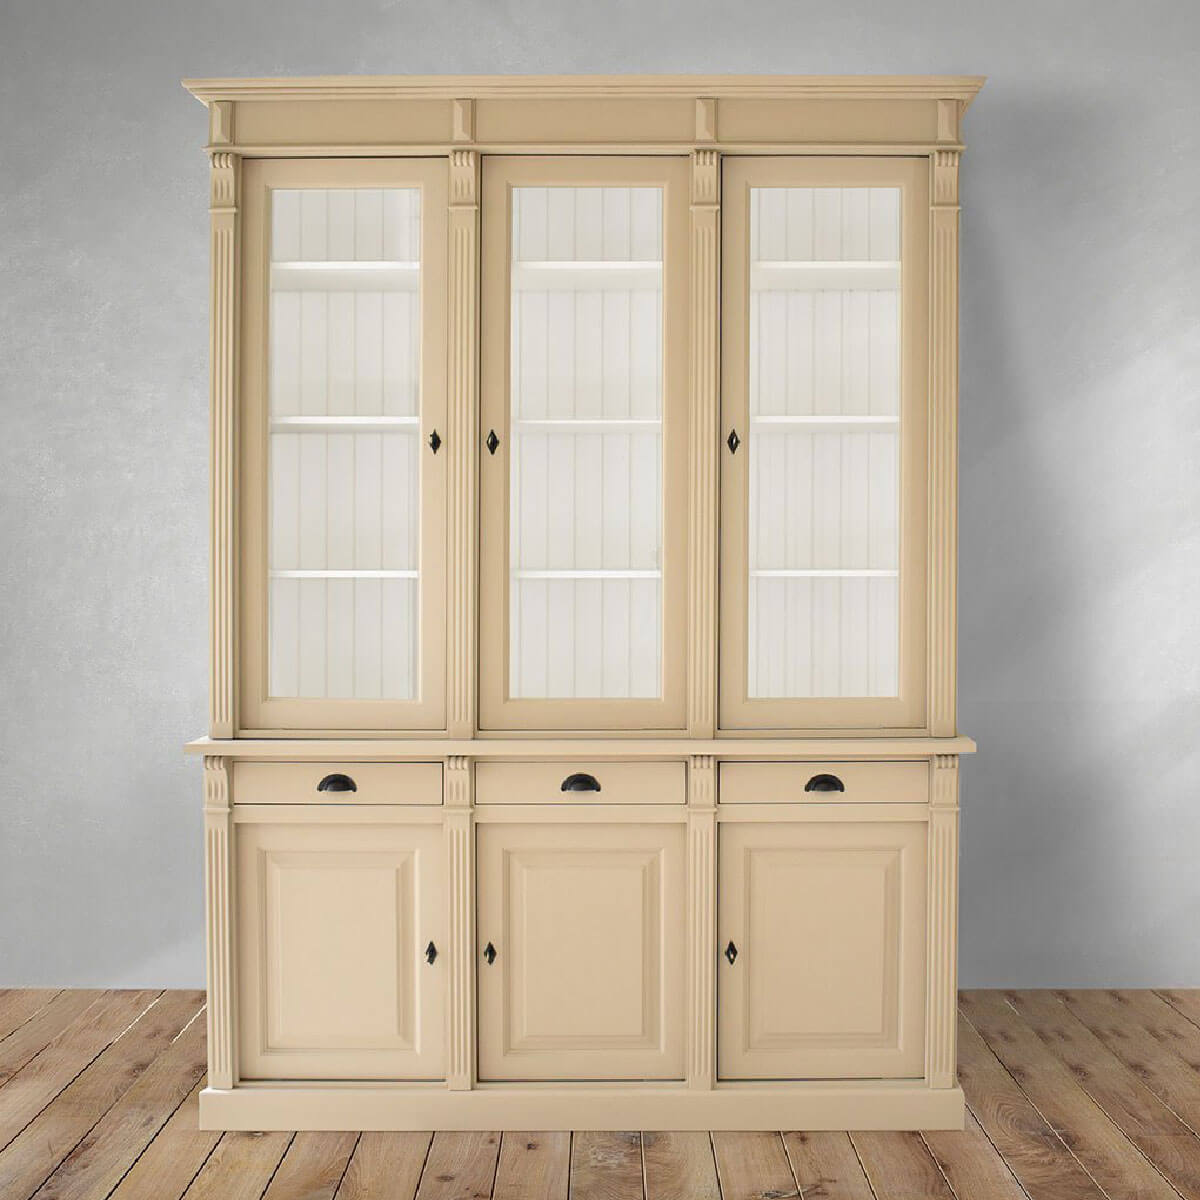 James-Cabinet-in-Beige-Cozy-Home-Dubai1